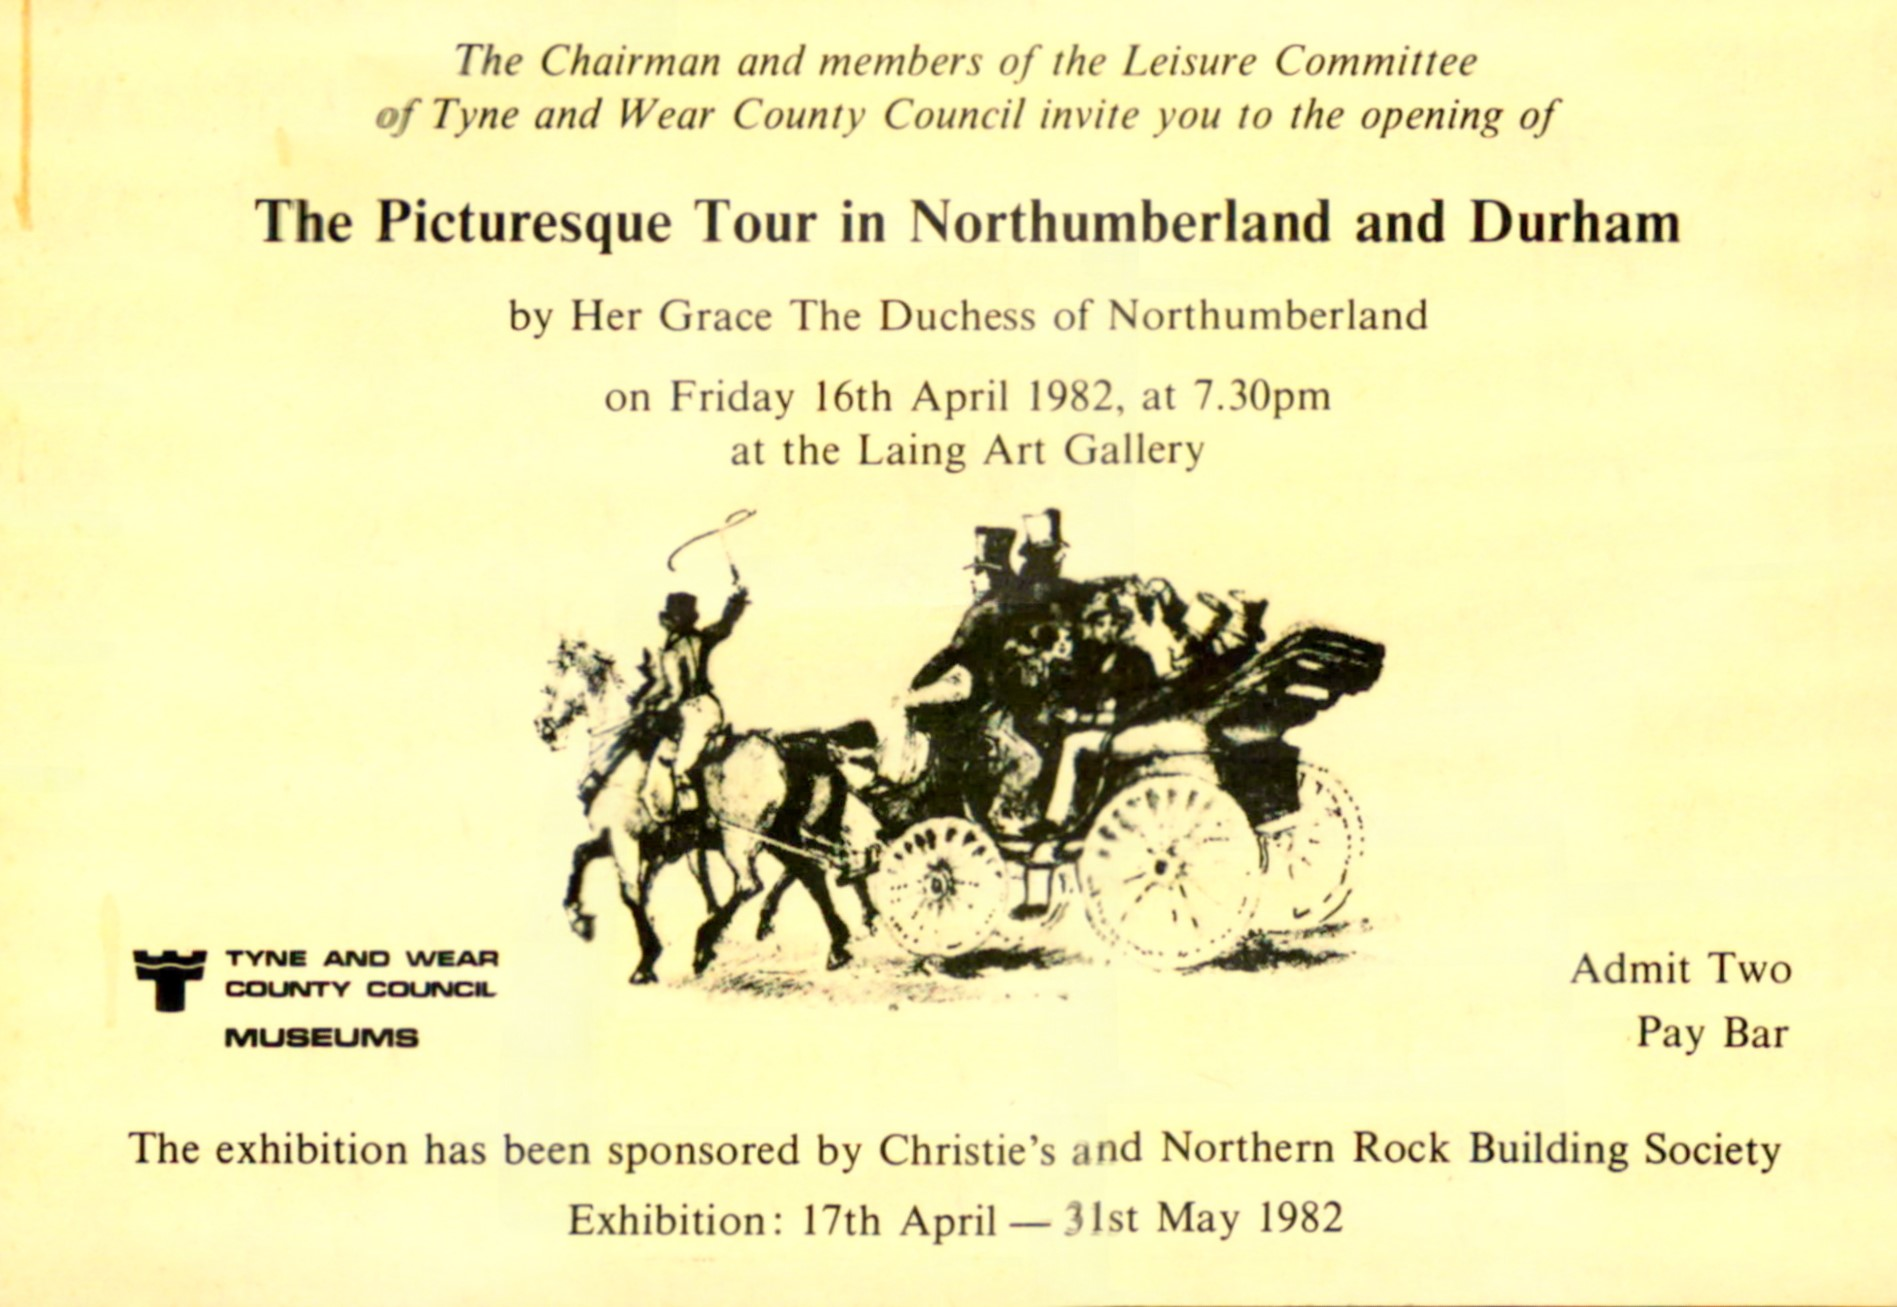 scan of the exhibition opening invite